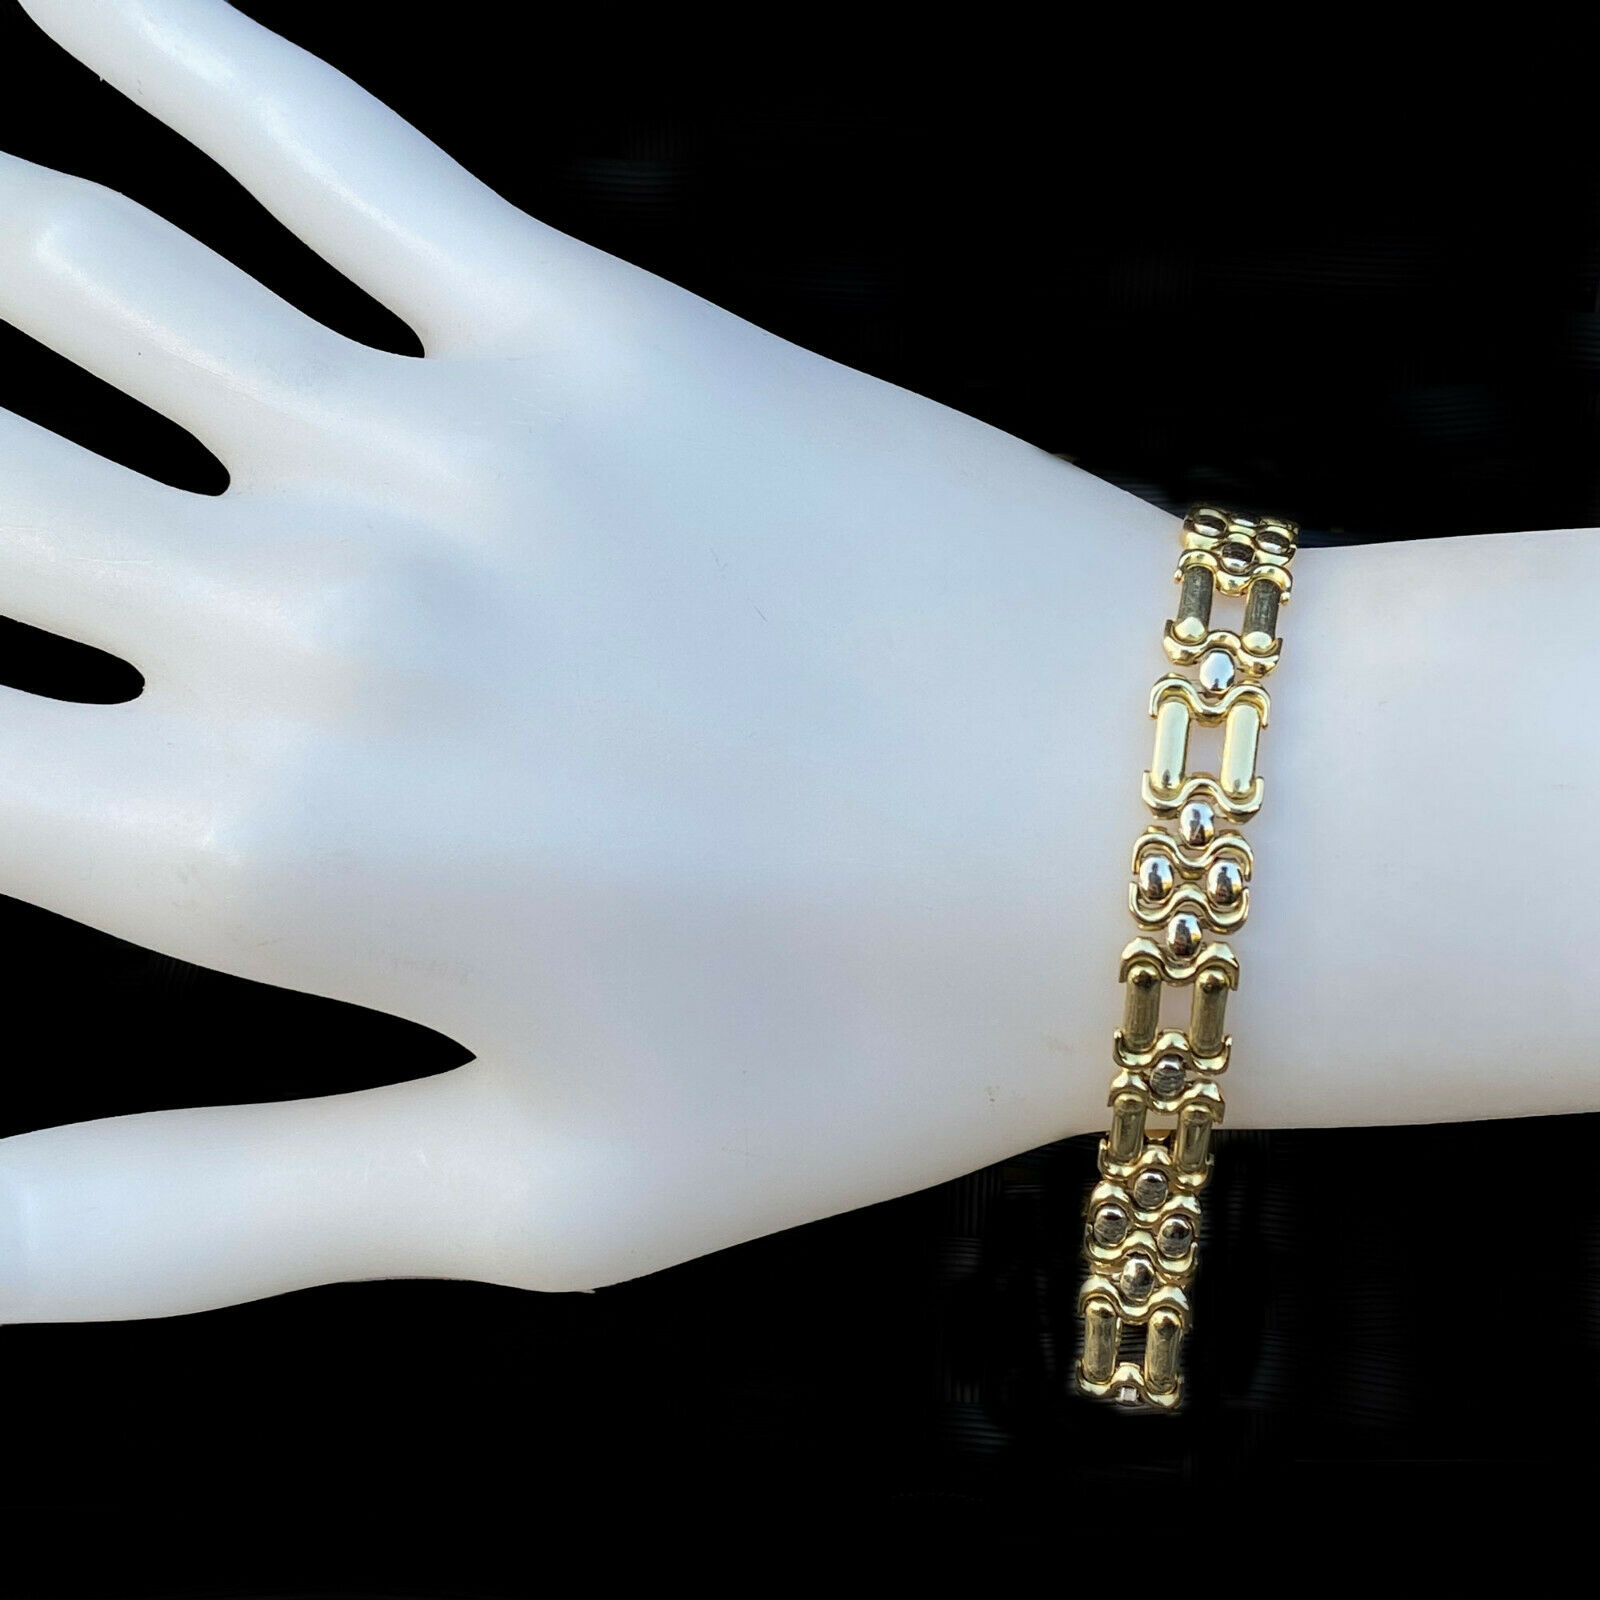 Italian, 18ct, 18k, 750 Gold, solid panther link bracelet with concealed clasp